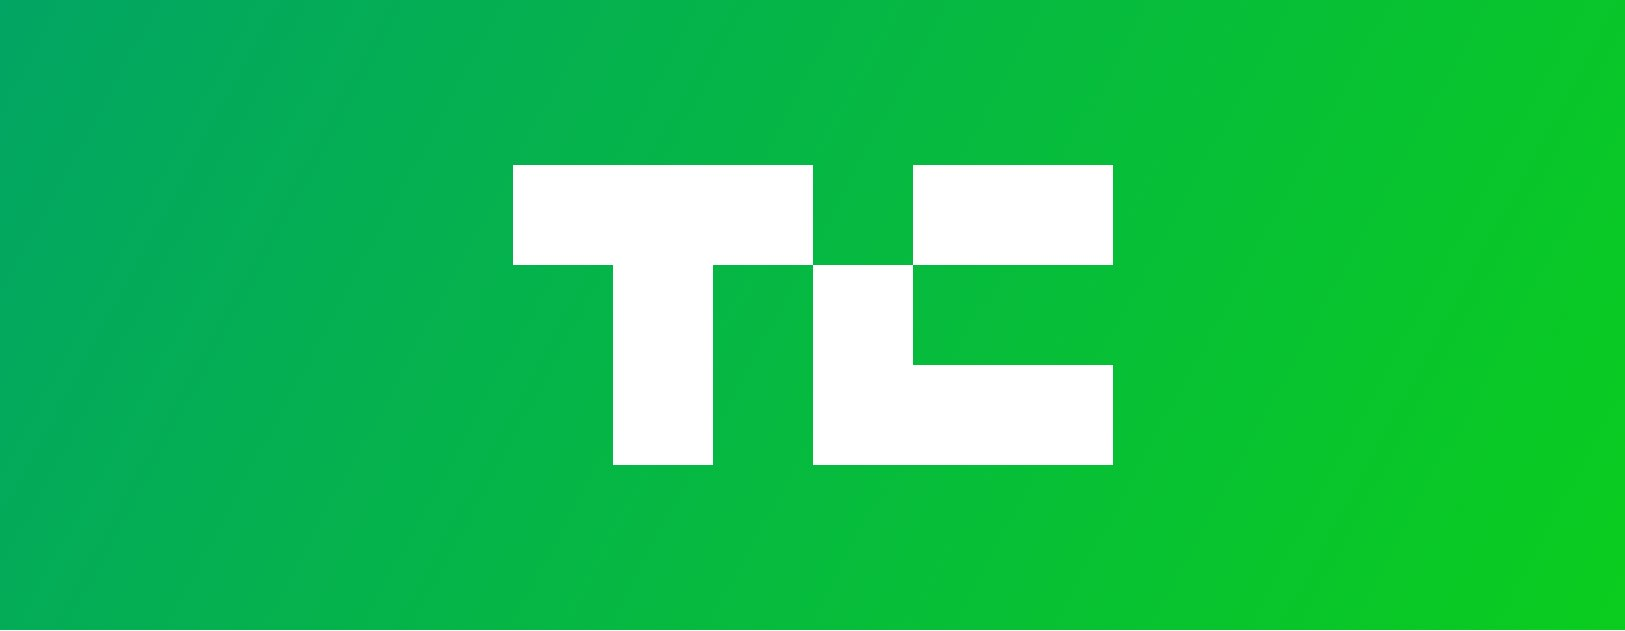 Mamoon Hamid discusses venture capital on TechCrunch Equity podcast